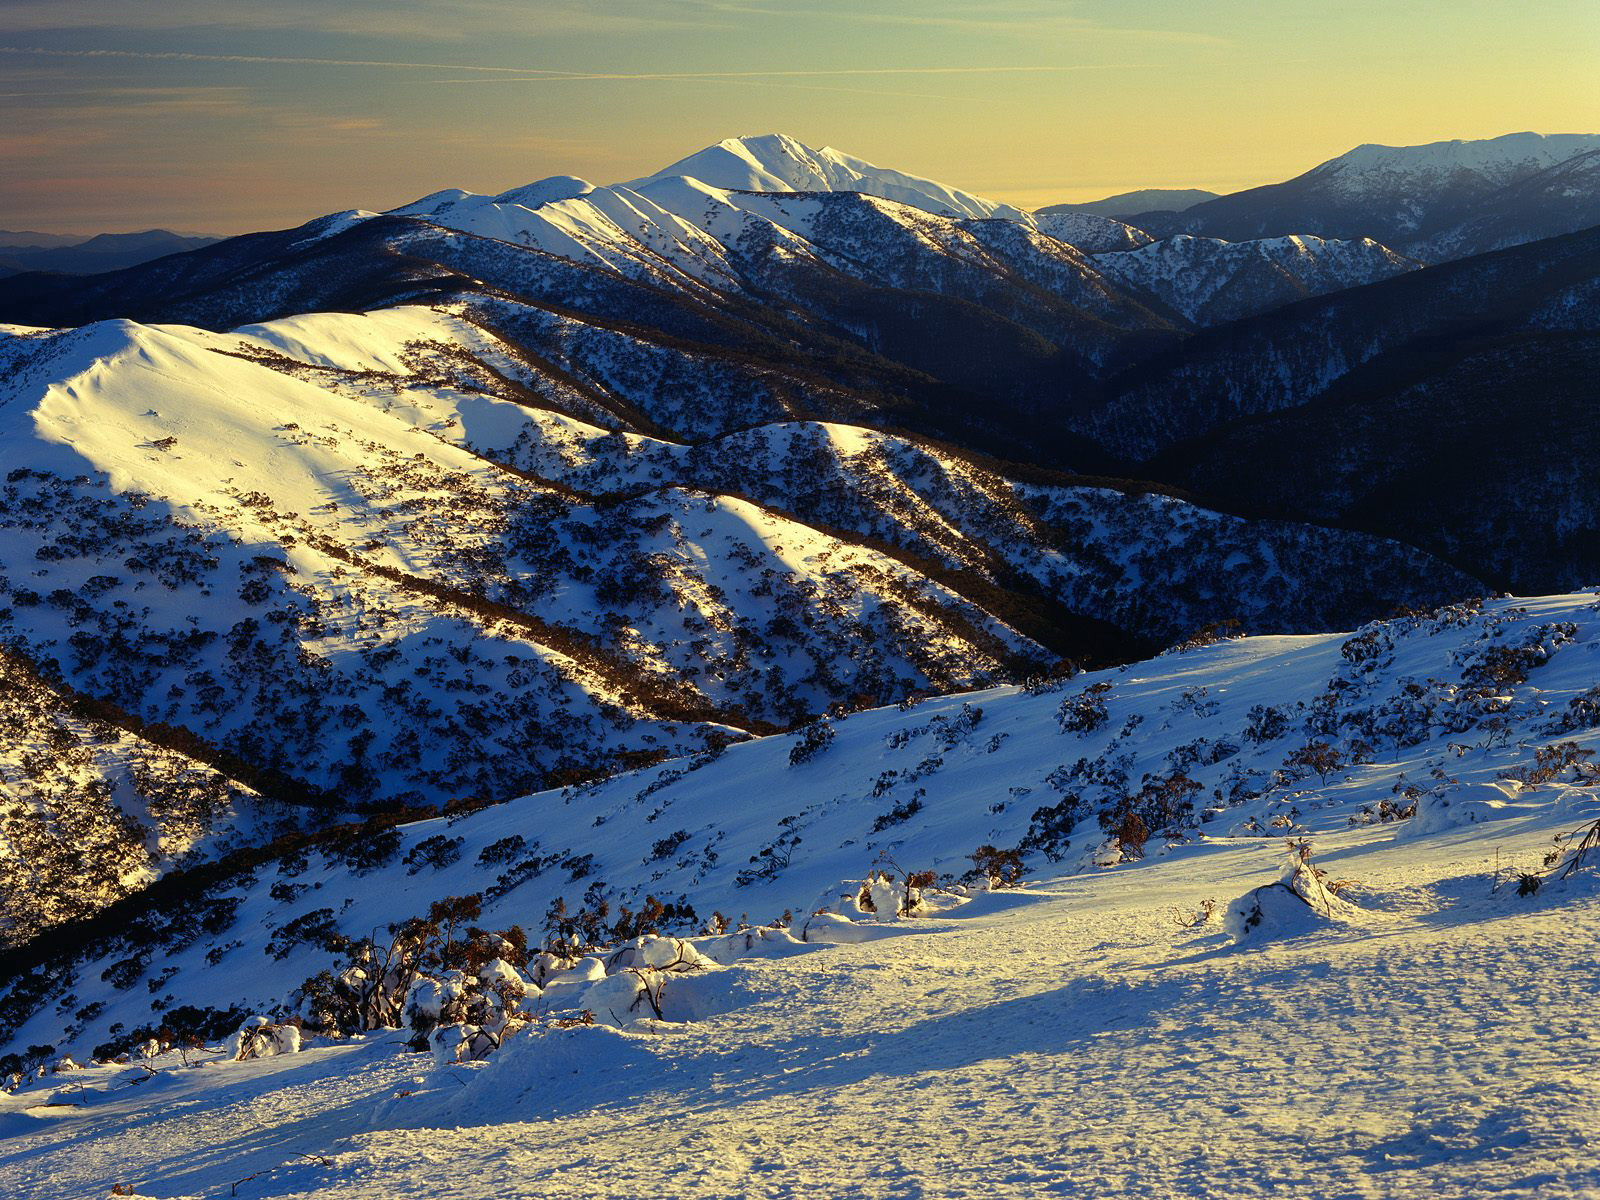 Sunrise on Mount Feathertop